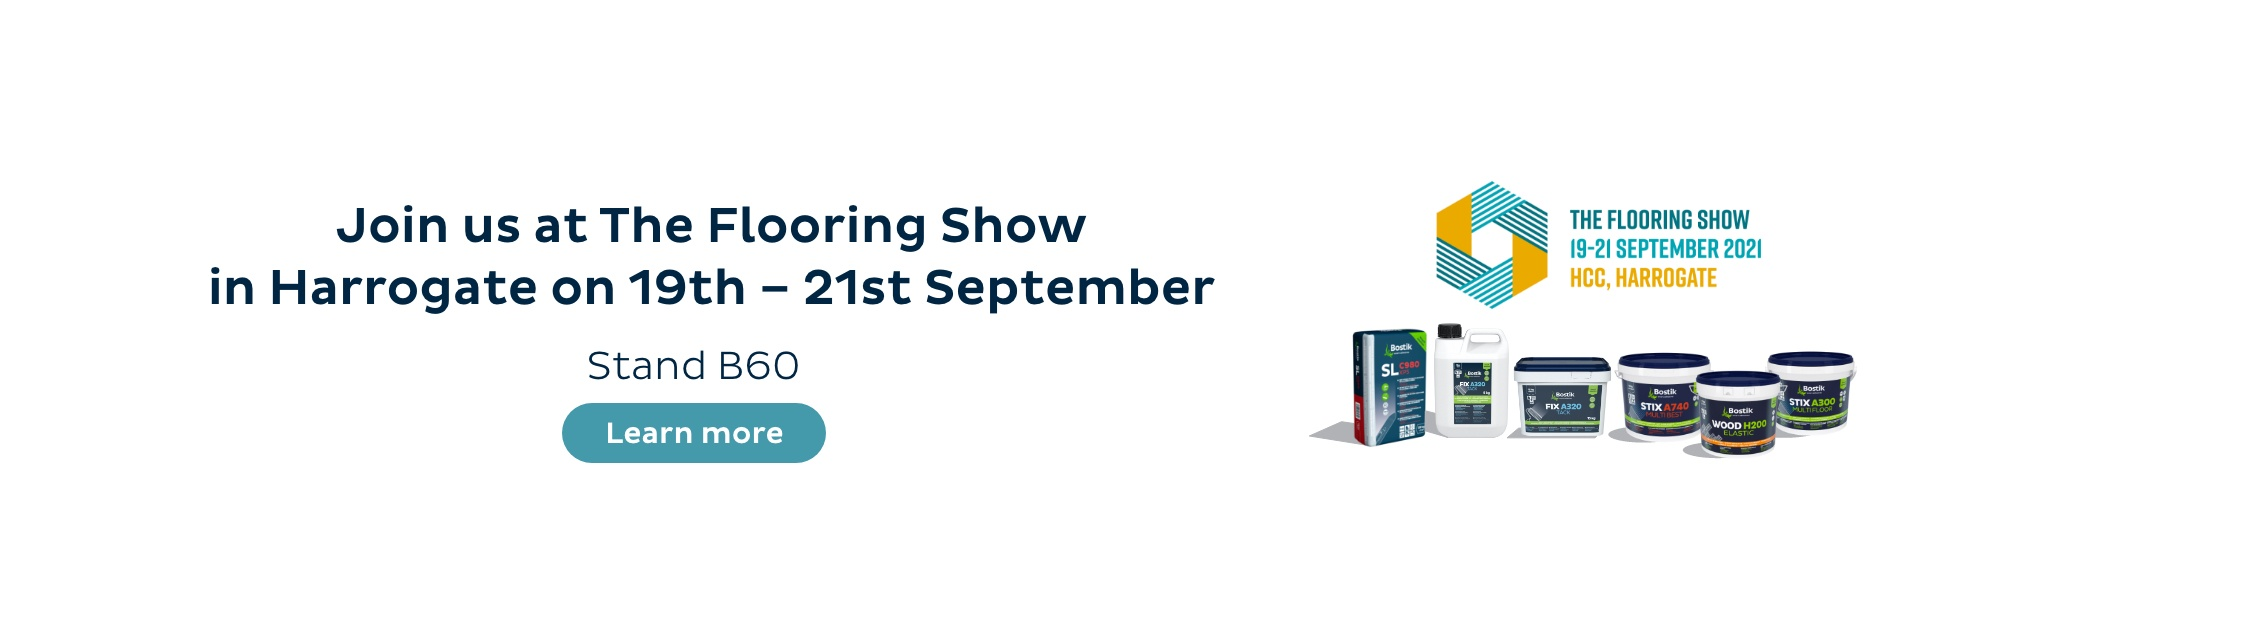 Bostik's attendance at this years flooring show 19-21 September stand 860